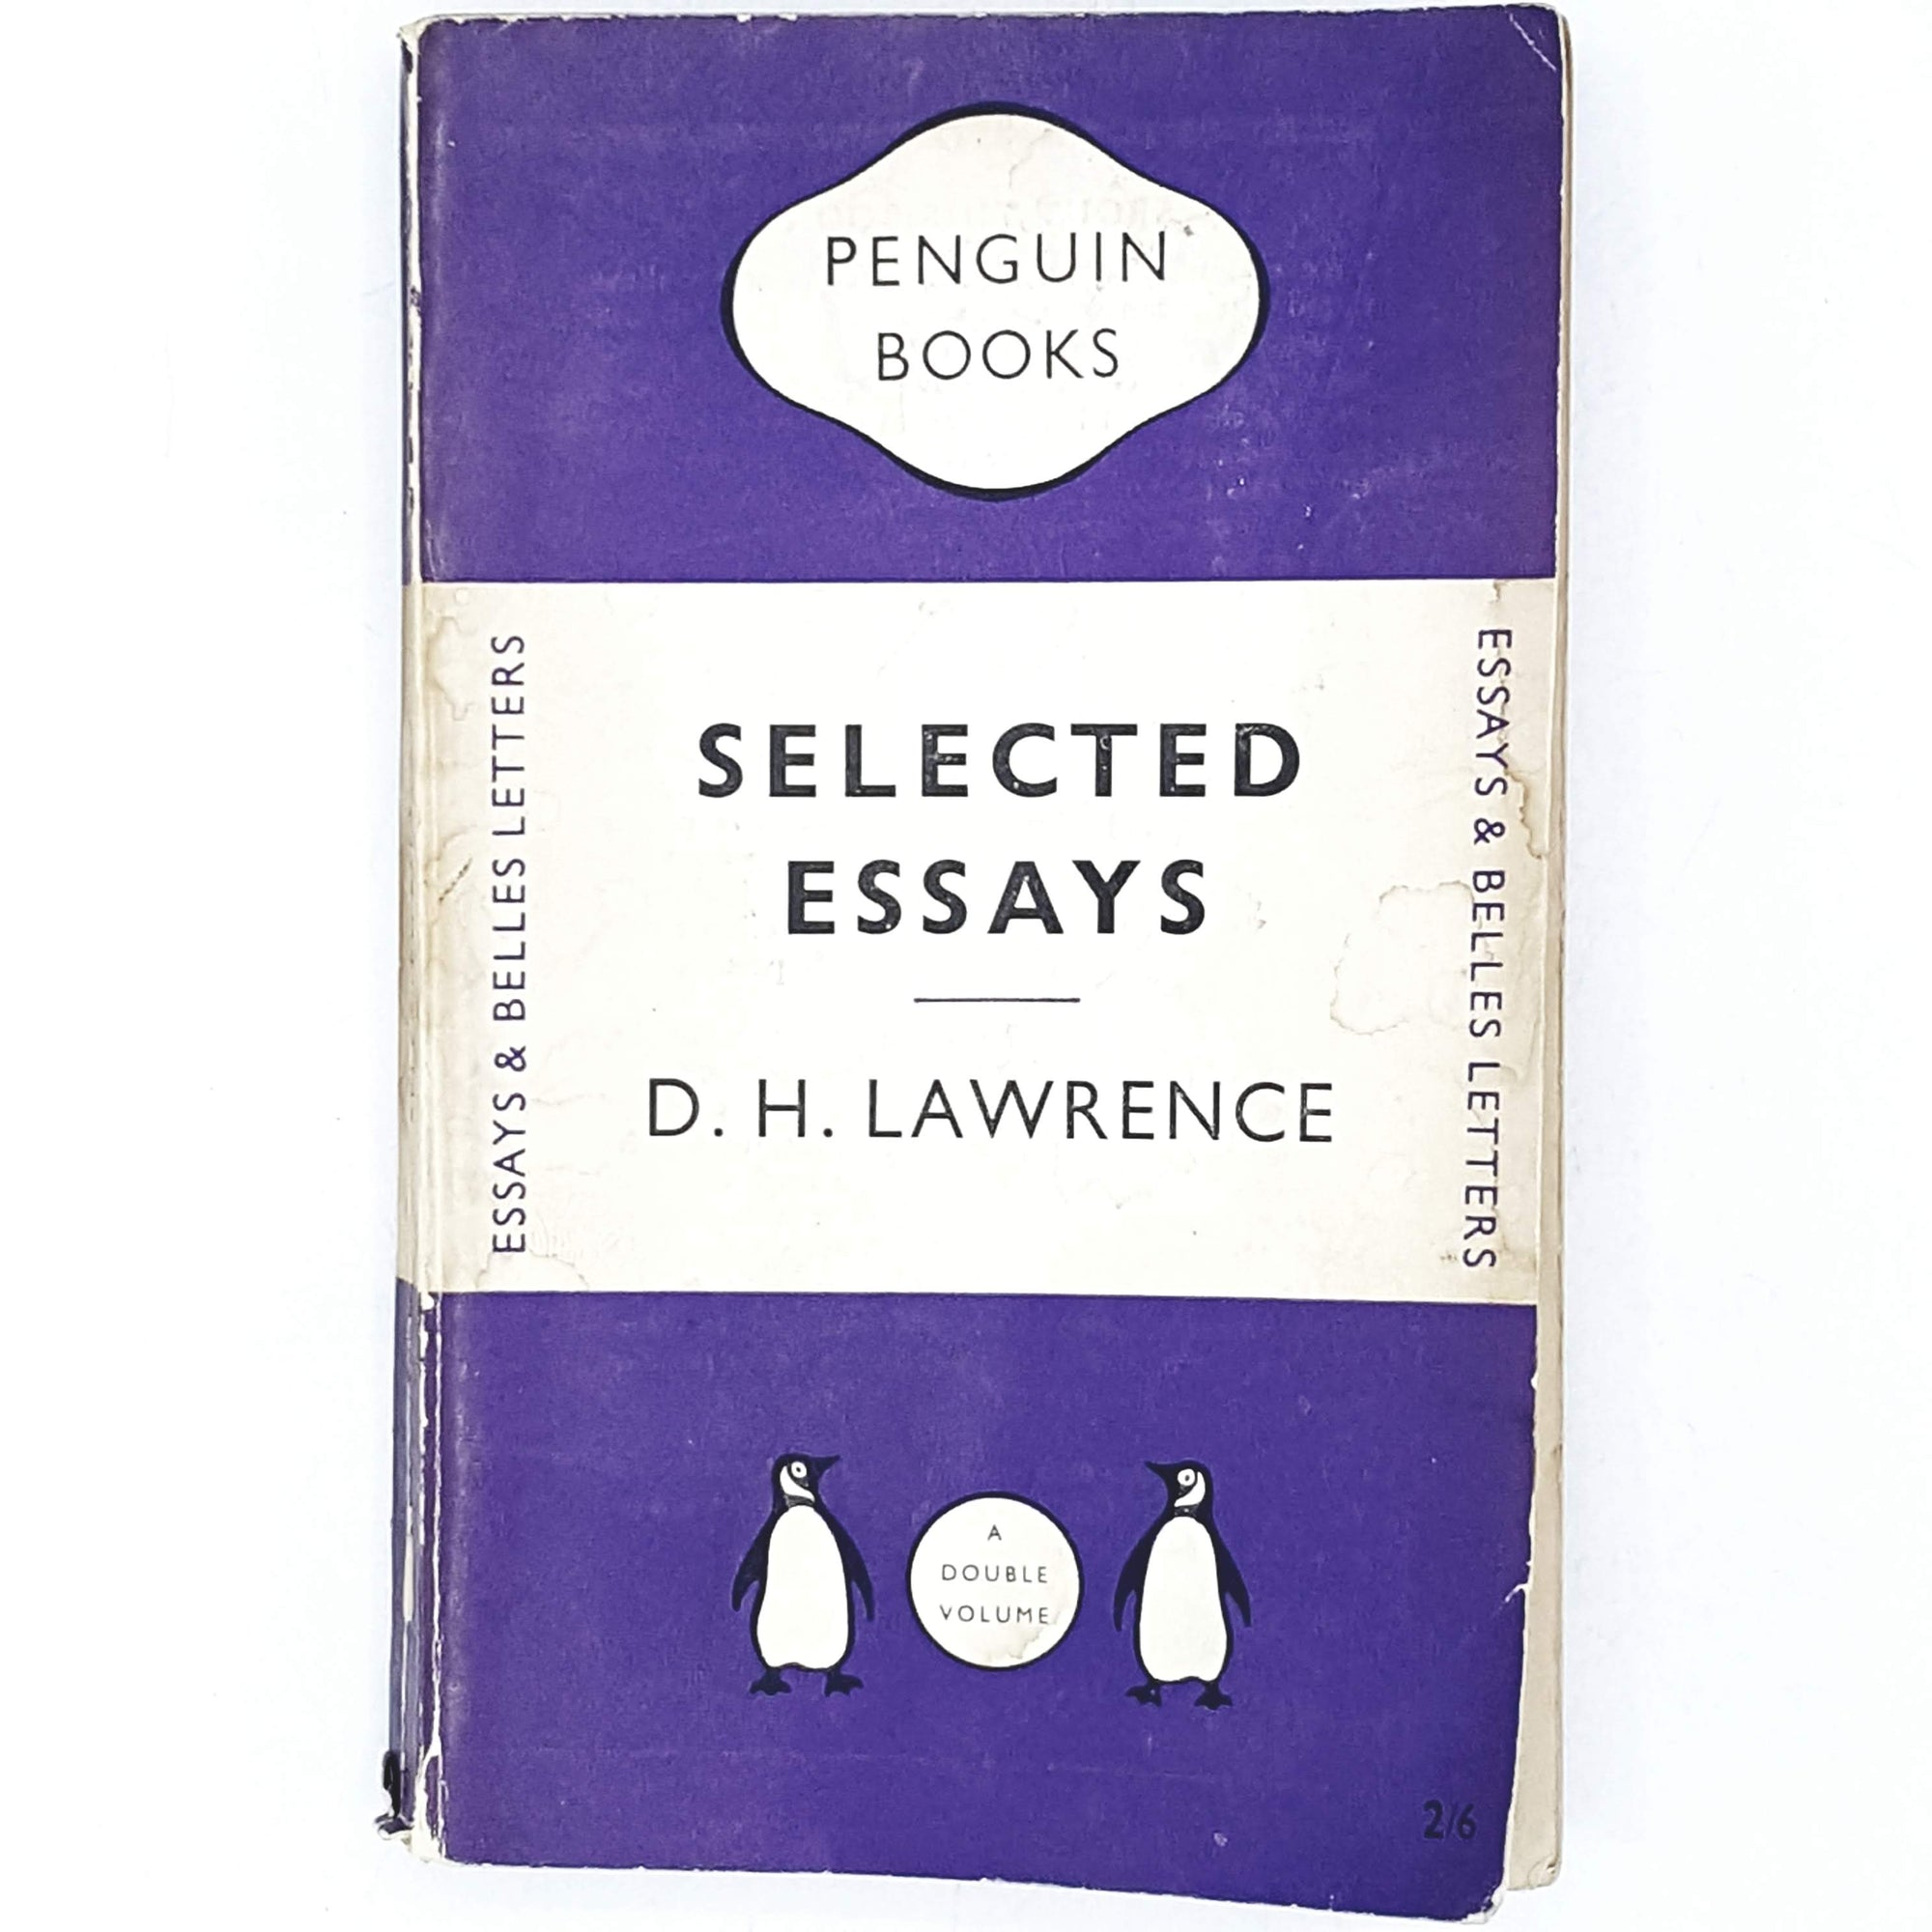 First Edition D. H. Lawrence's Selected Essays 1950